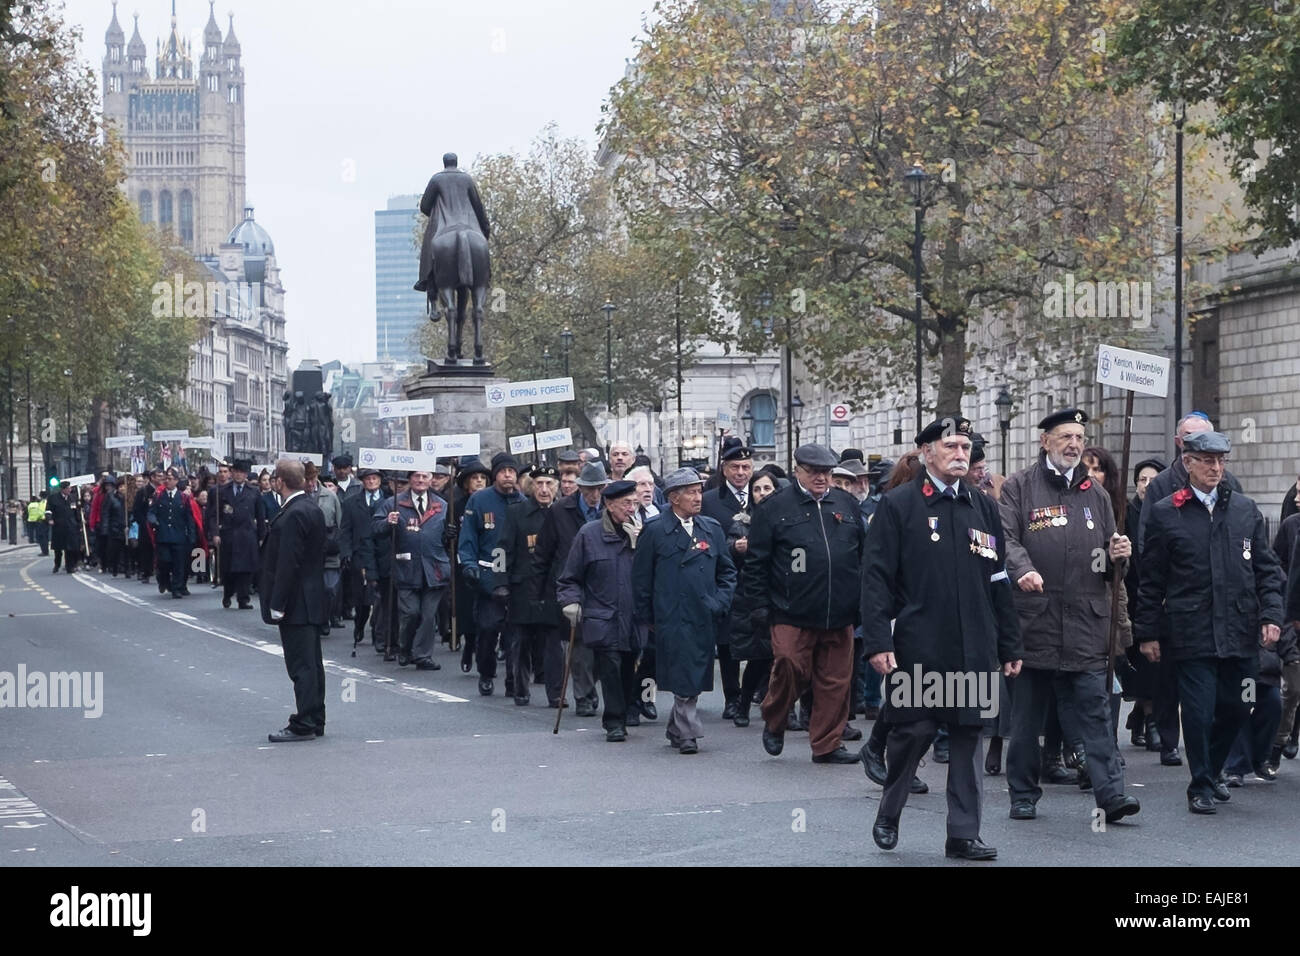 London, UK. 16th Nov, 2014. On Sunday Nov 16th the Association of Jewish Ex-Servicemen (AJEX) & Women paraded - Stock Image